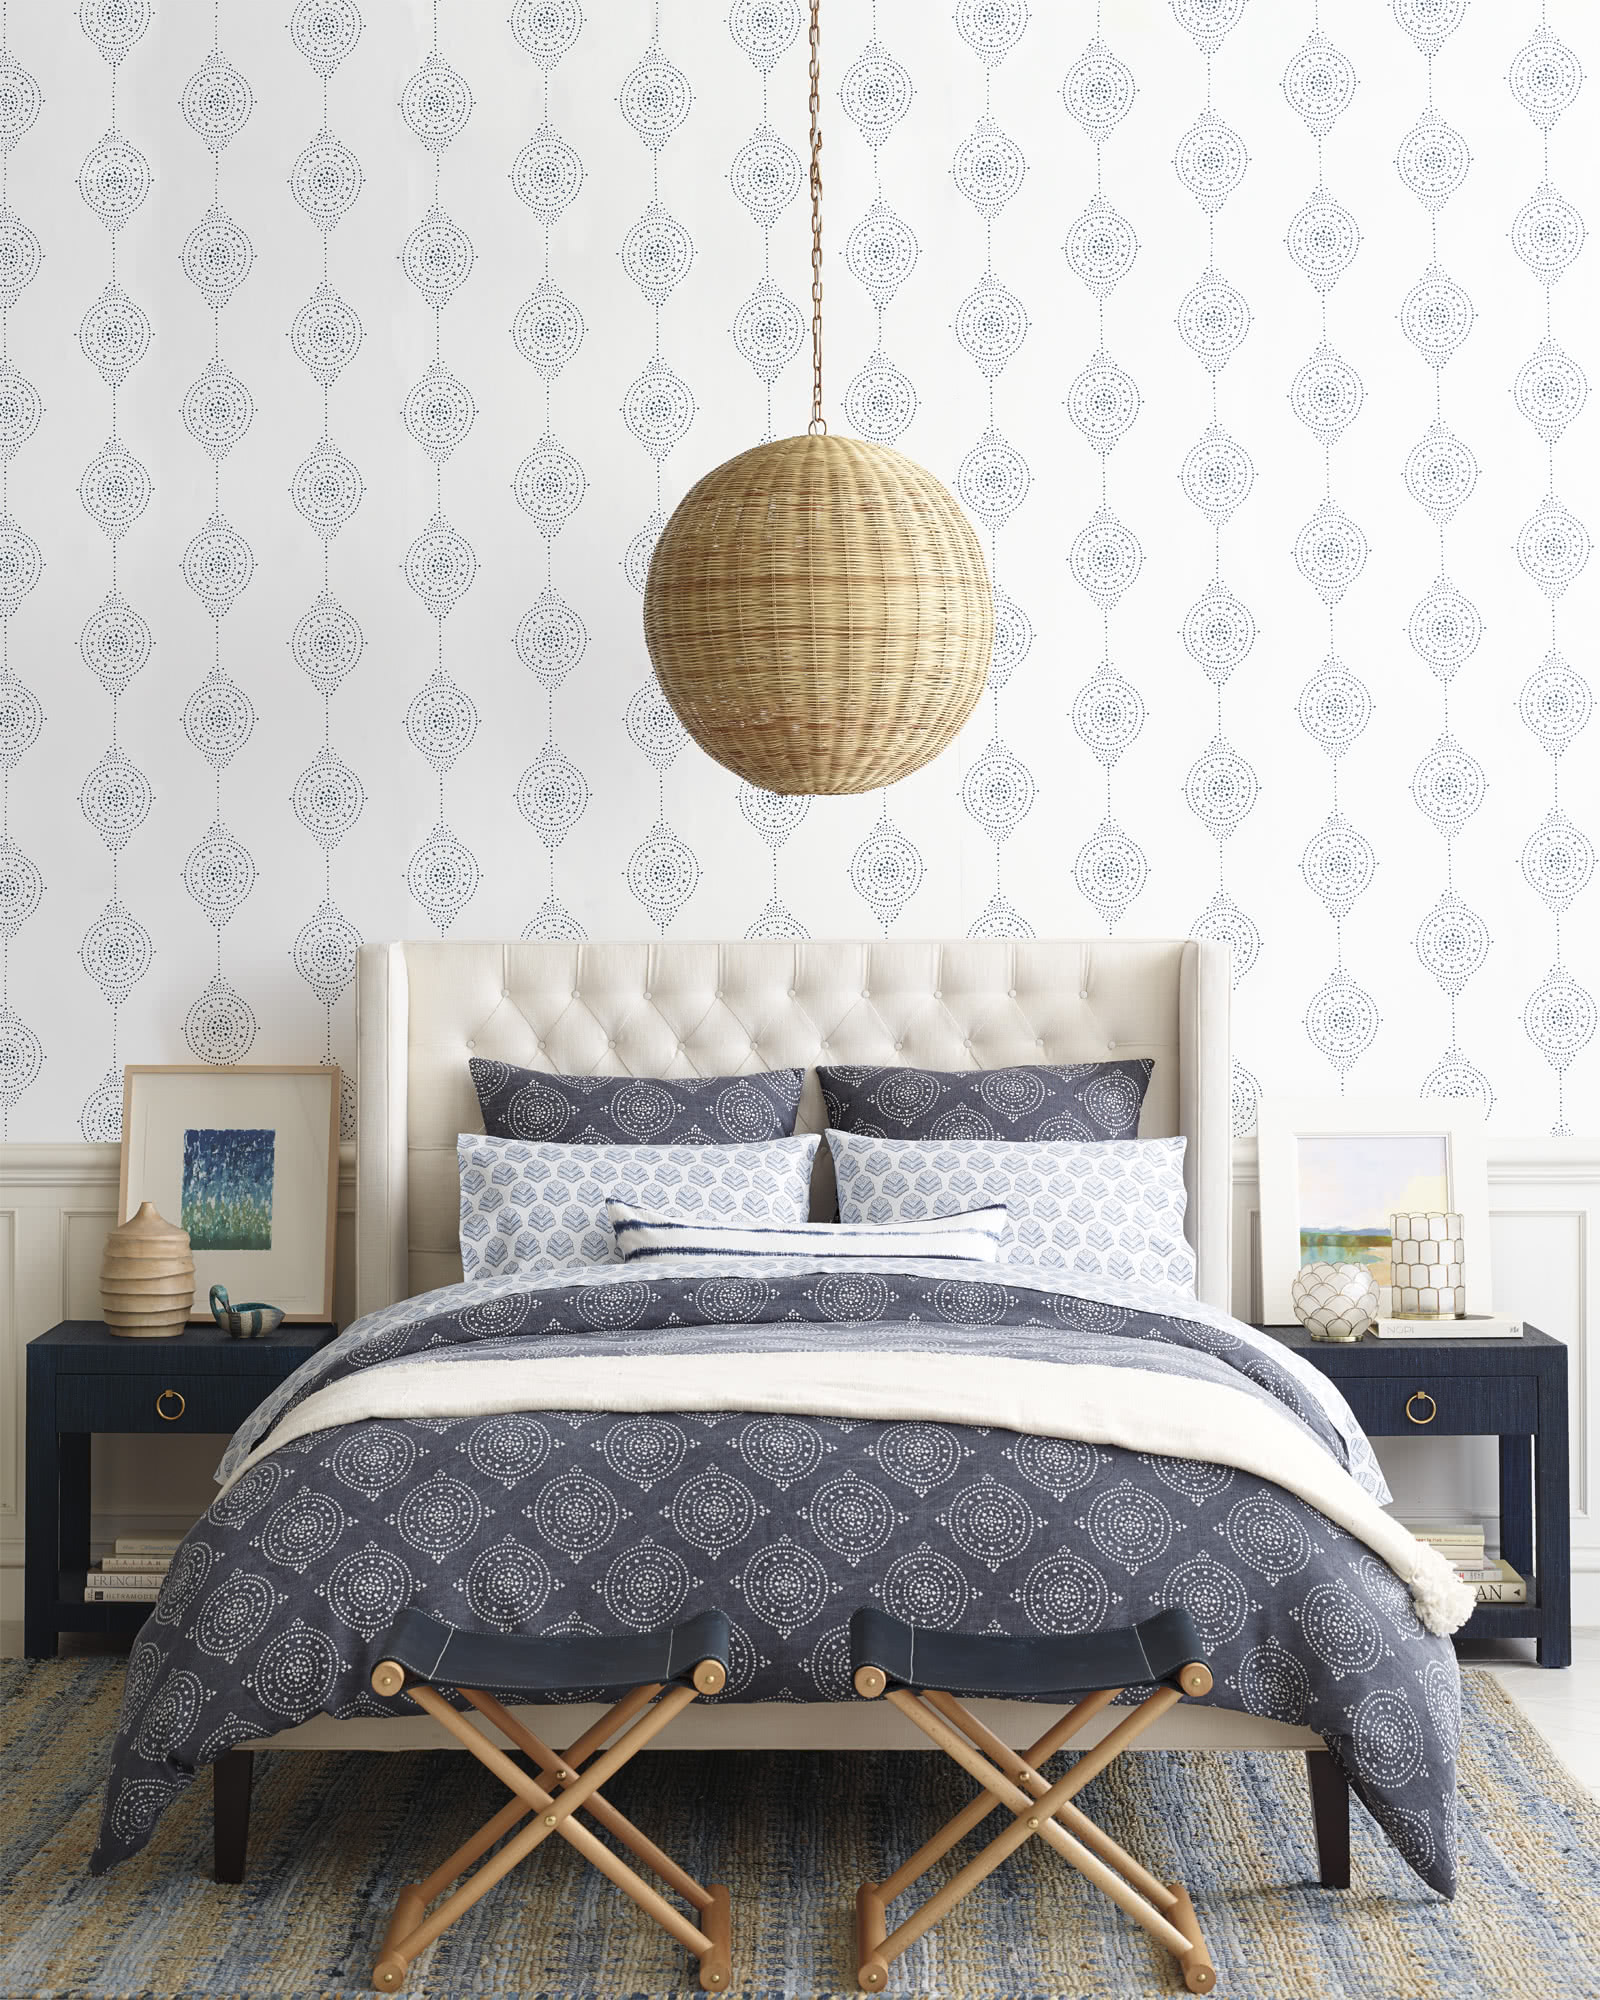 Comforter Sets: Free Shipping on orders over $45! Bring the comfort in with a new bedding set from hereifilessl.ga Your Online Fashion Bedding Store! Get 5% in rewards with Club O!